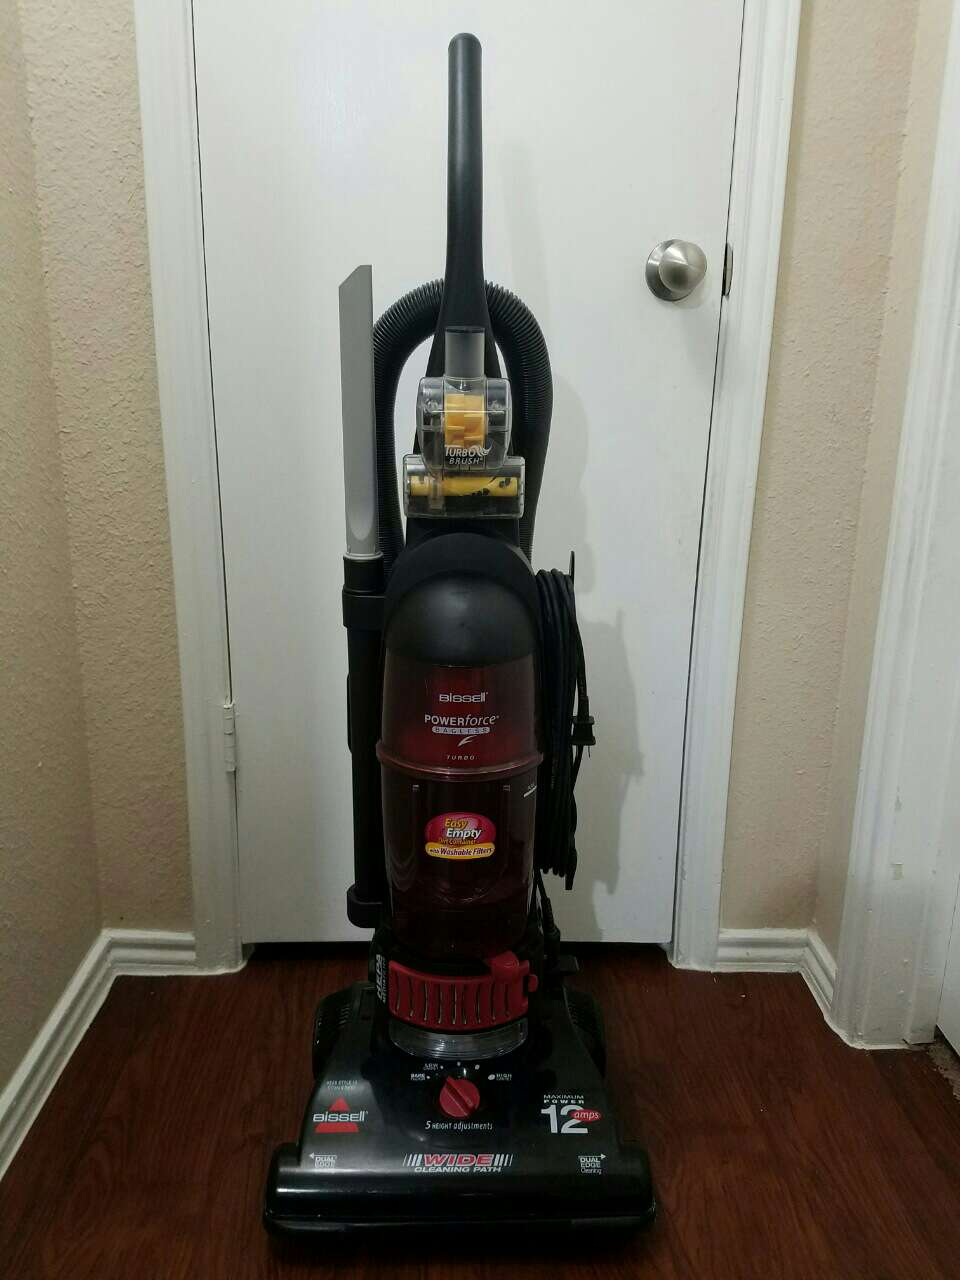 Home Electronics Bissell Powerforce Bagless Turbo Vacuum further Household Tools Eureka Optima 12  s Vacuum Cleaner besides Best Haunted Places together with 30893373 besides Eureka   Mighty Mite Canister Vacuum. on eureka rocking chair